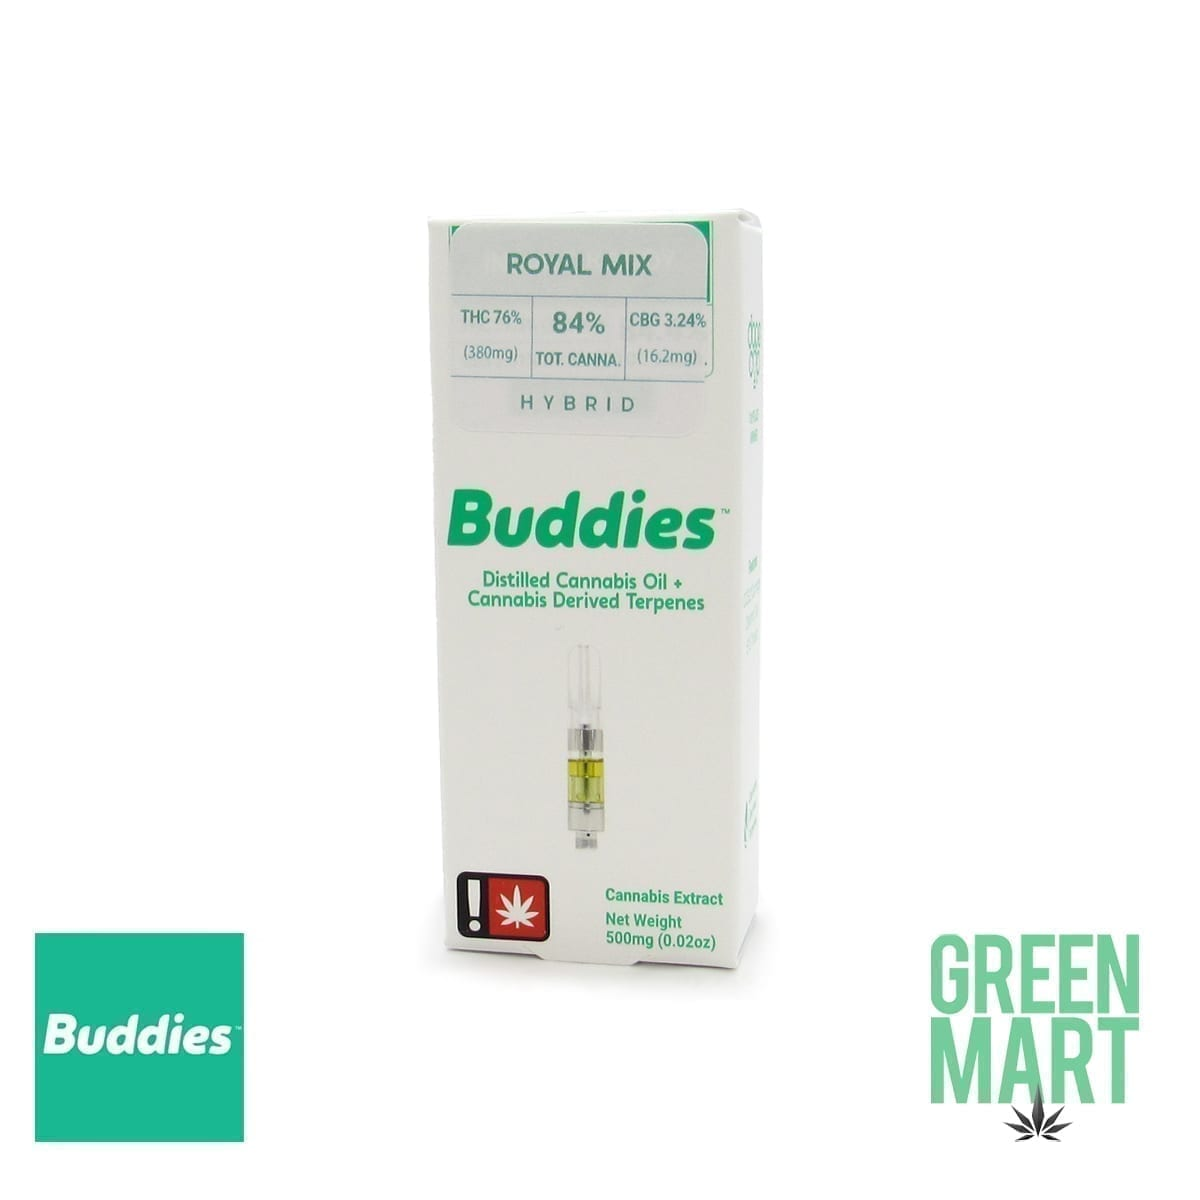 Buddies Brand Distillate Cartridge - Royal Mix